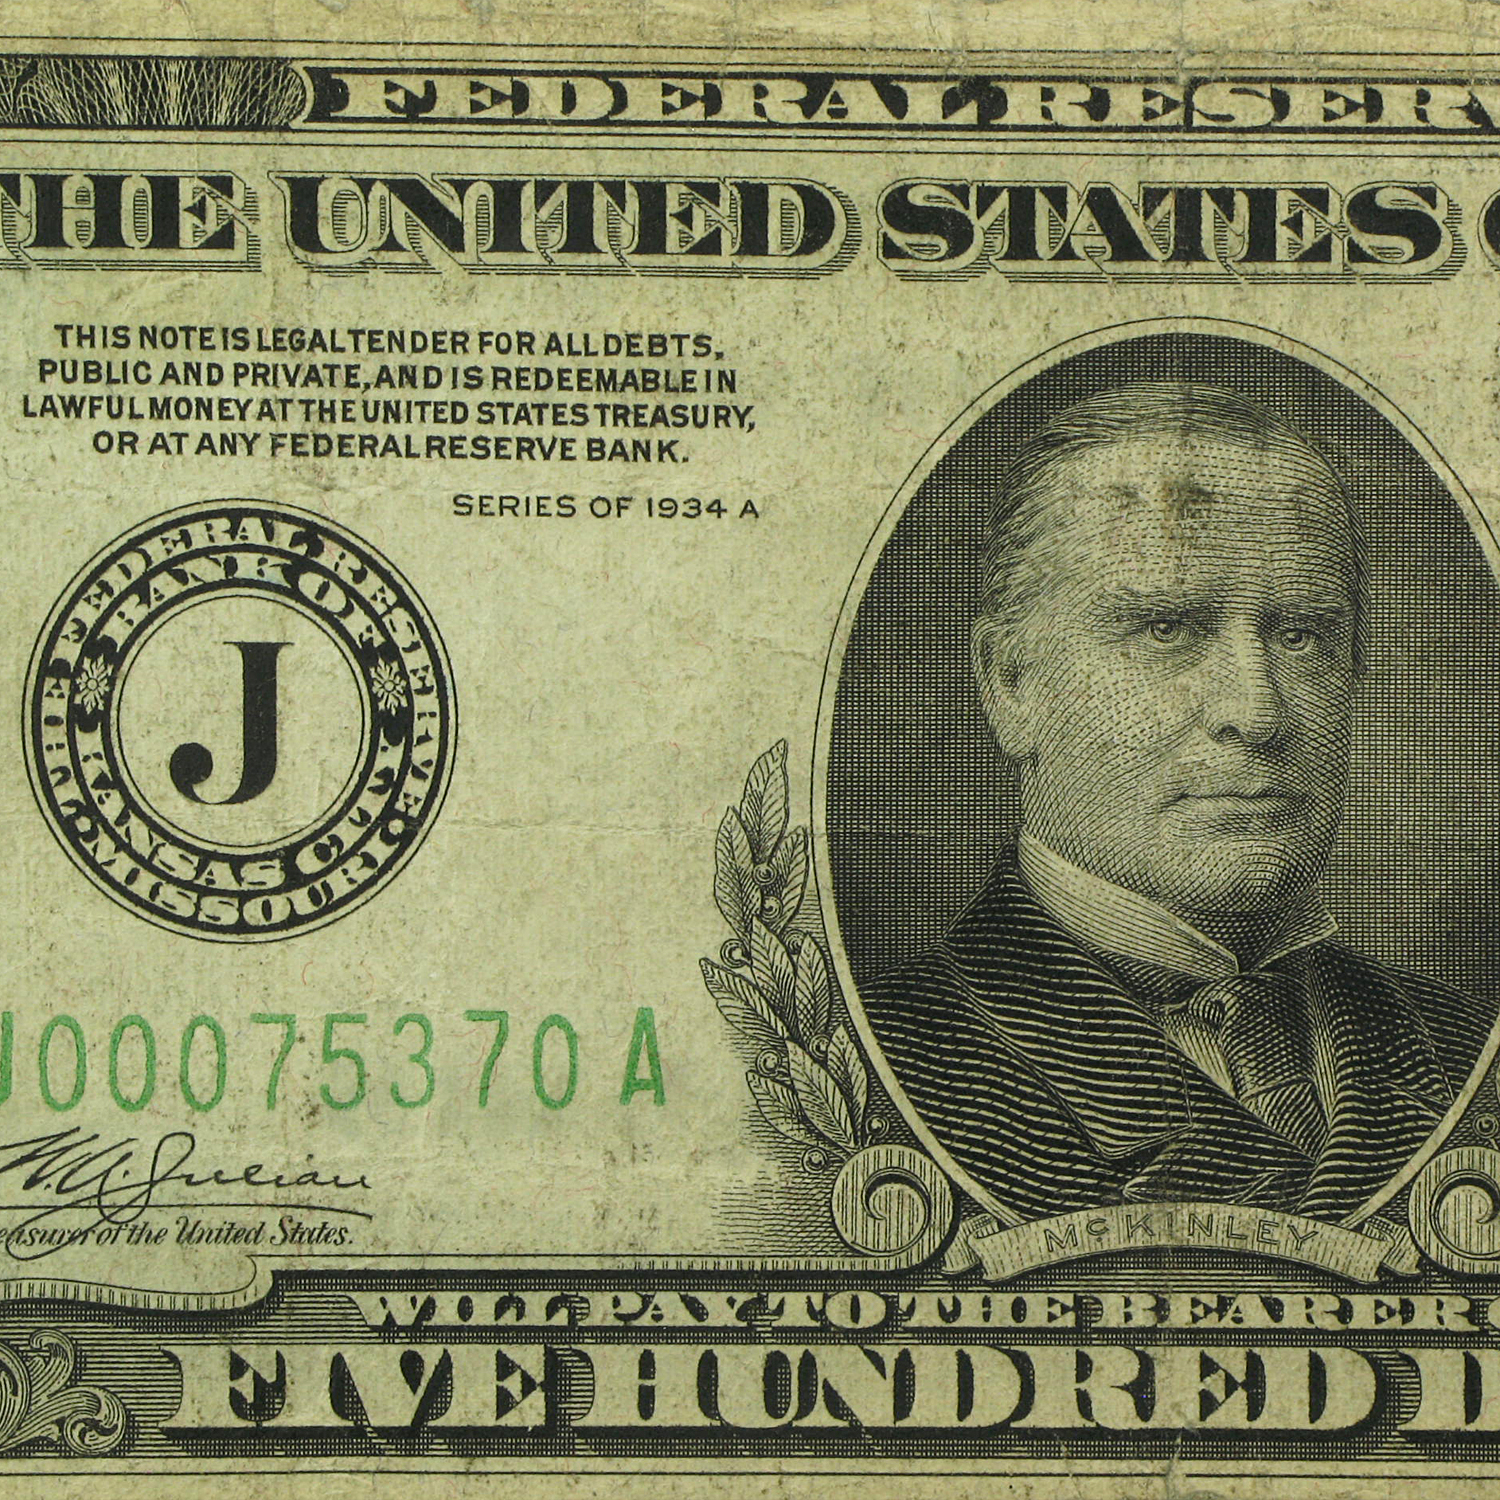 1934-A (J-Kansas City) $500 FRN Fine